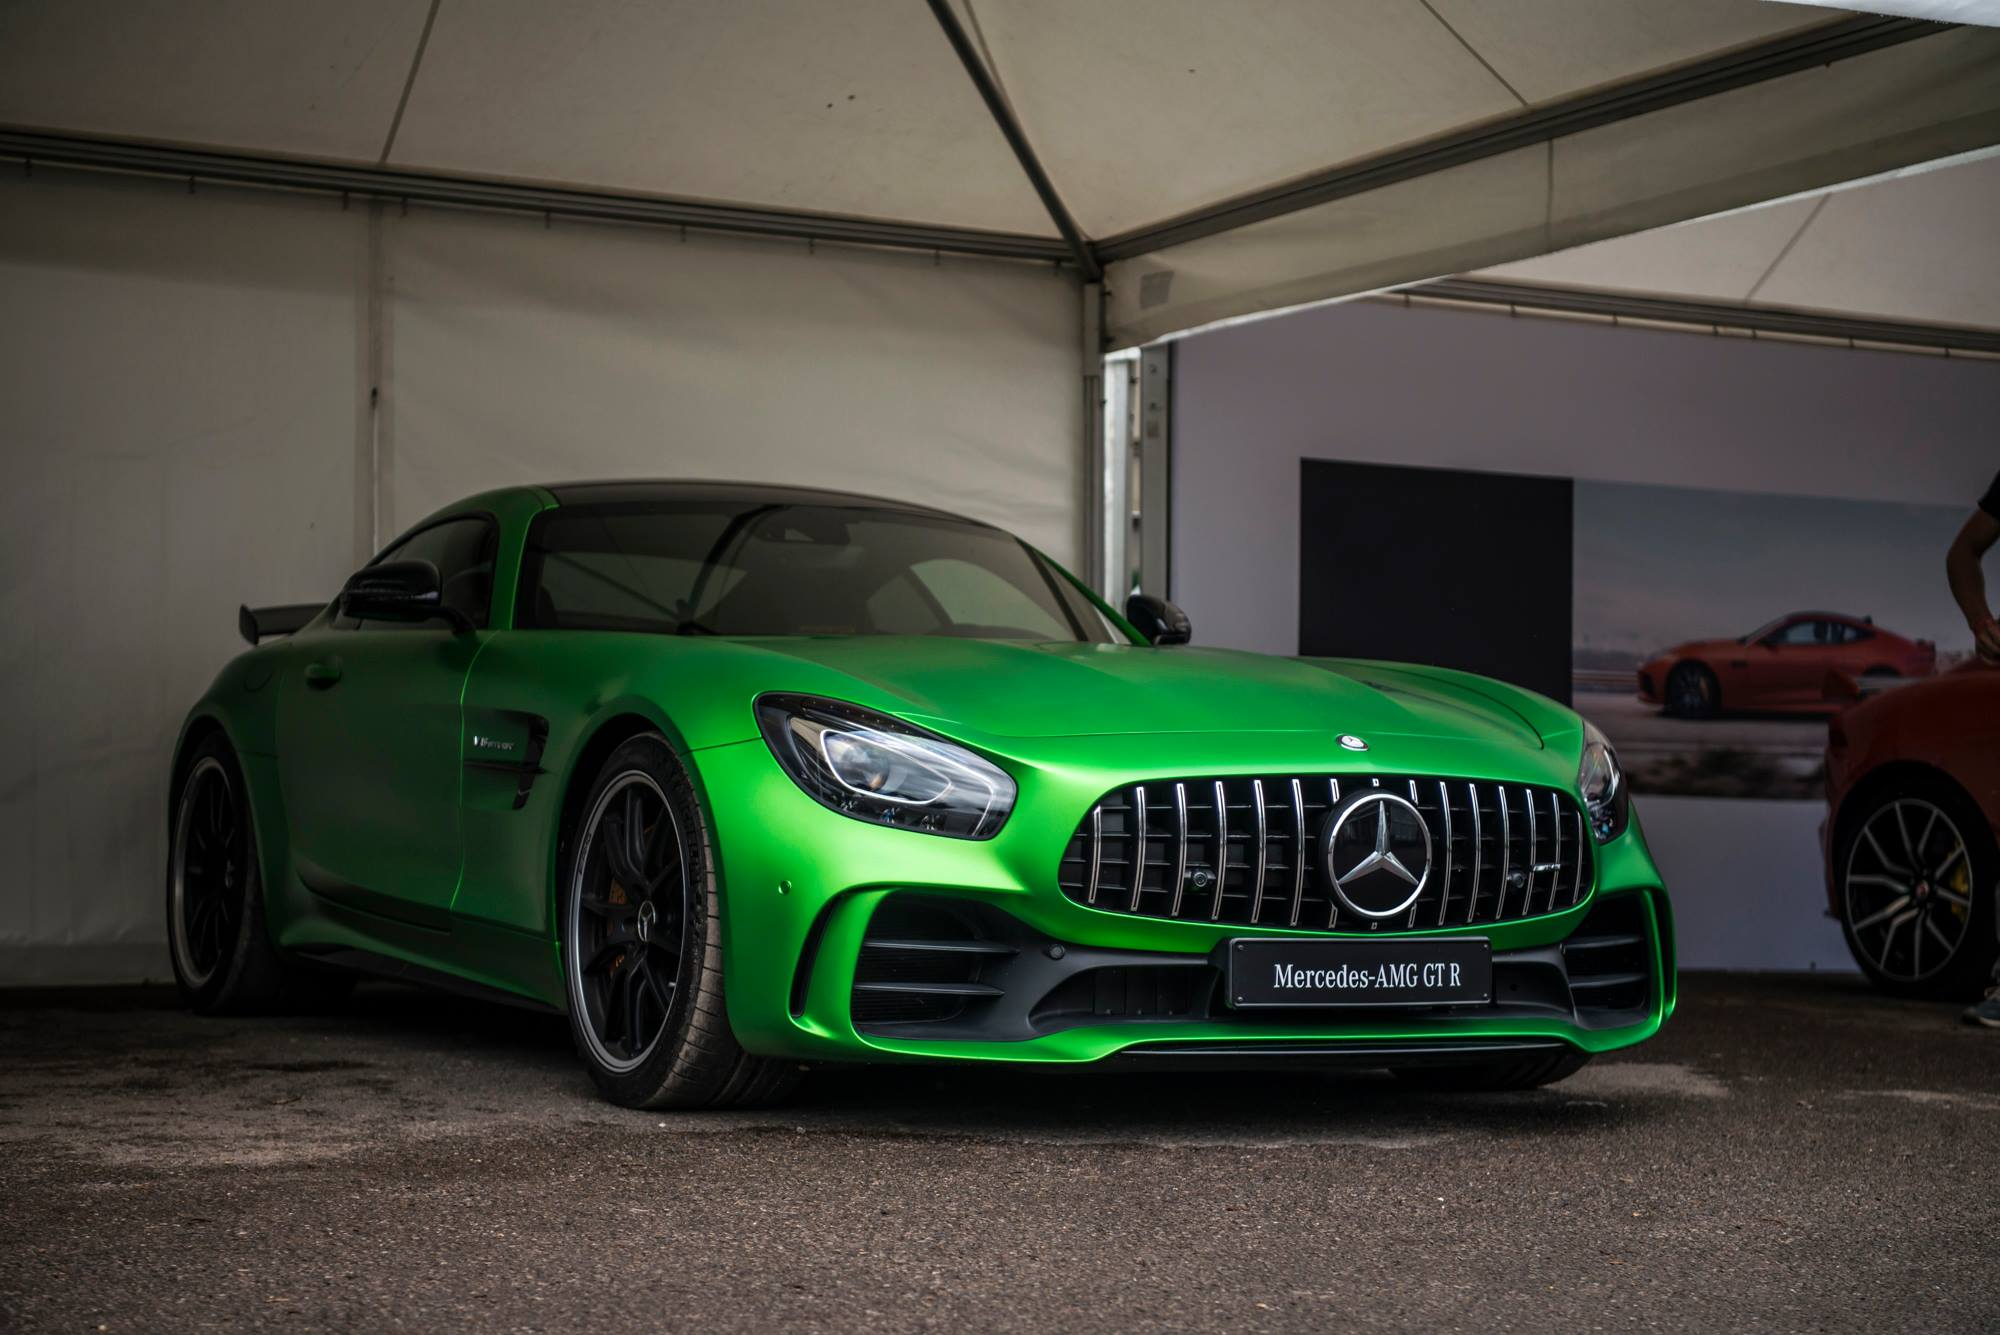 mercedes amg gt r makes dynamic debut at goodwood 2016 gtspirit. Black Bedroom Furniture Sets. Home Design Ideas